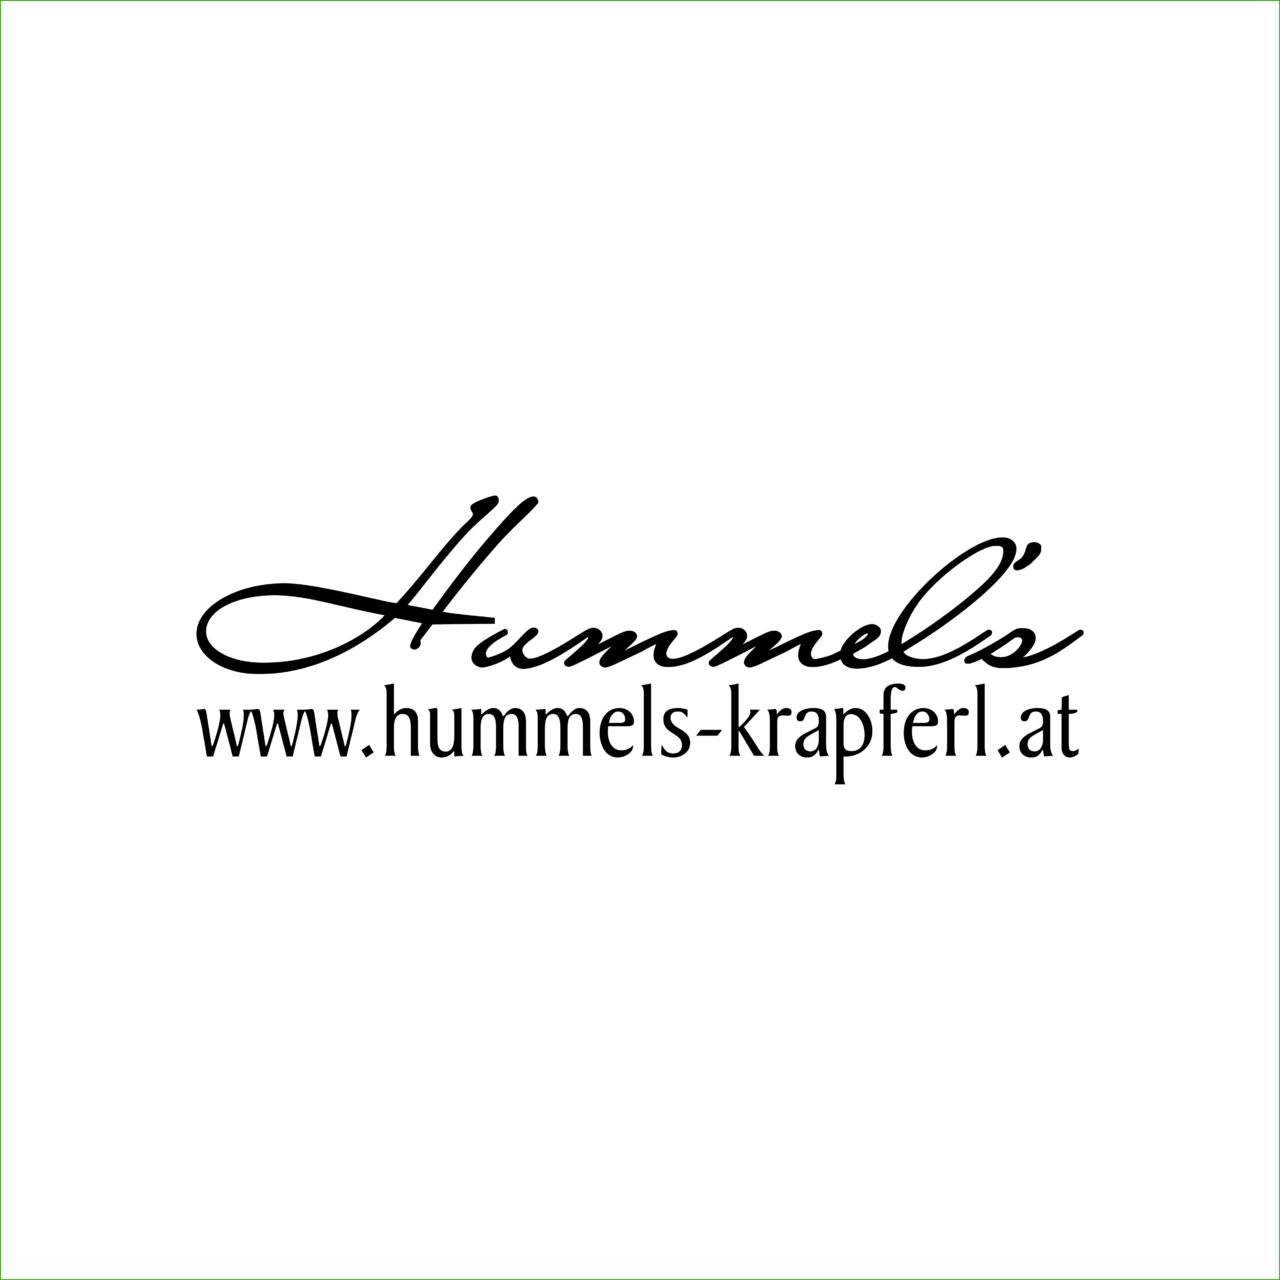 https://www.hummels-krapferl.at/wp-content/uploads/2019/08/Presse_4-1280x1280.jpg